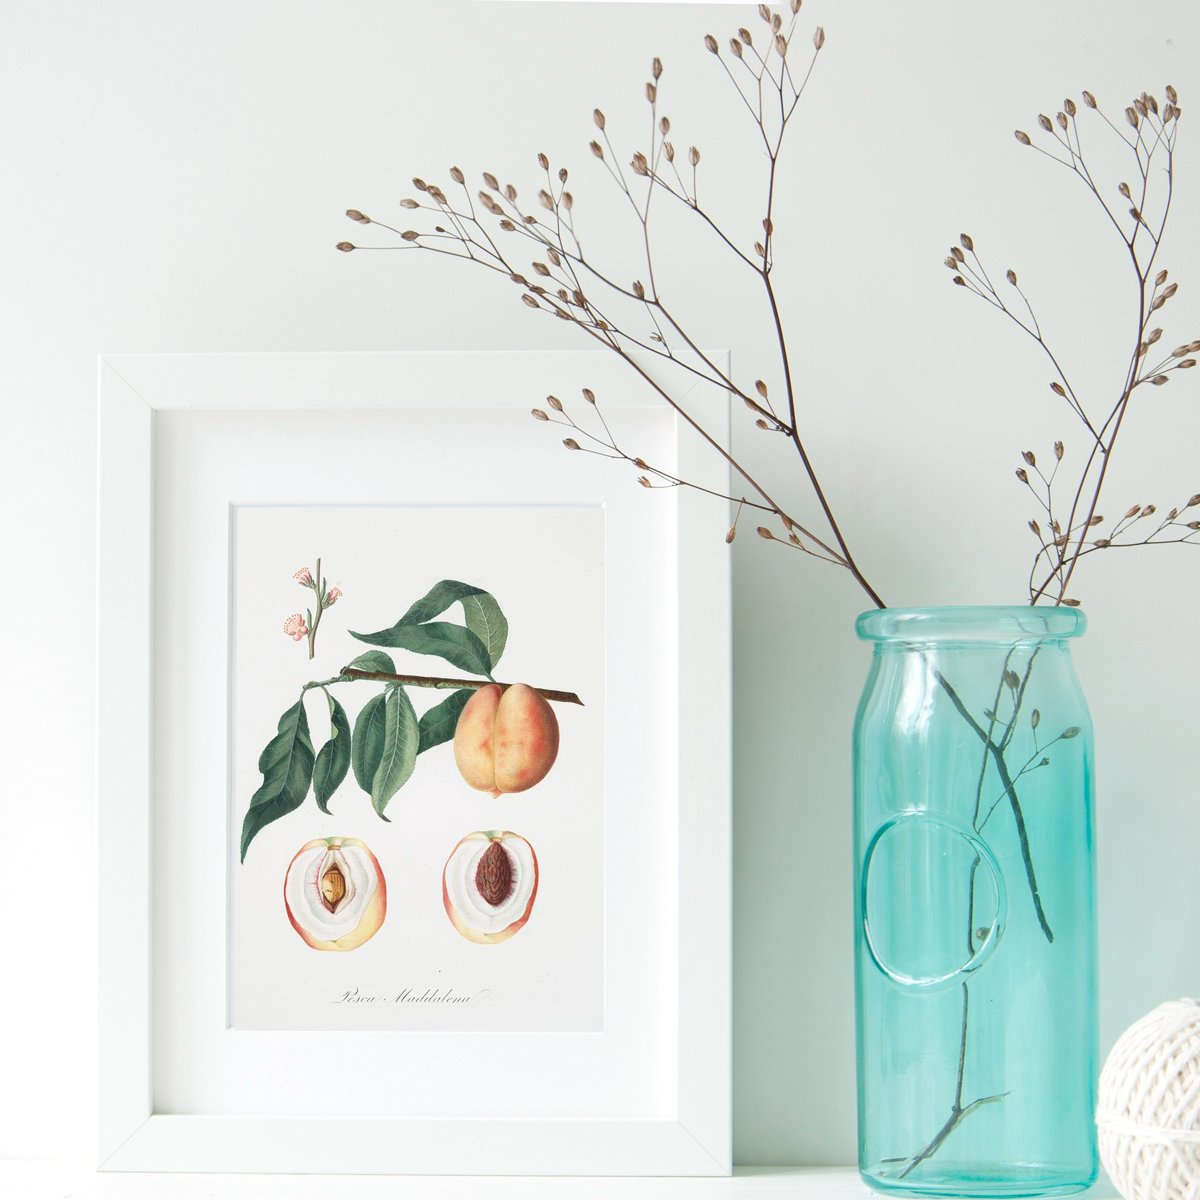 CCelebrate the arrival of Spring with these free printable vintage fruit tree Illustrations and Cards from The Birch Cottage!